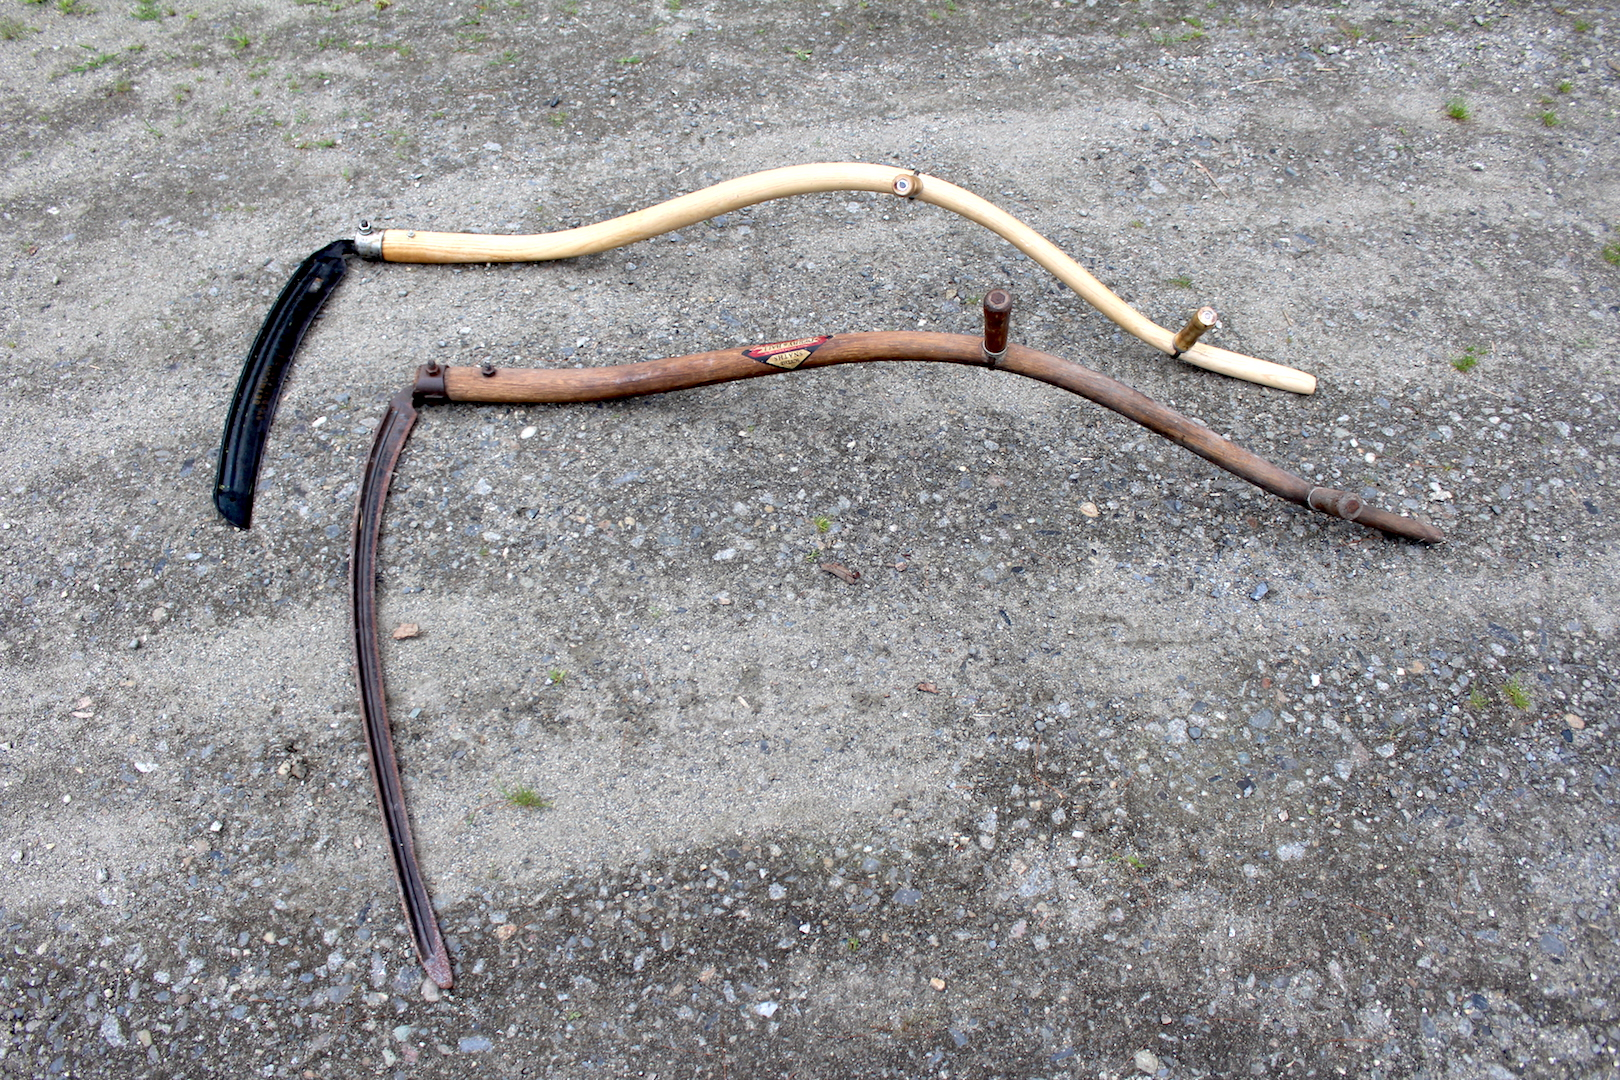 Two American style curved snaths (scythe handles).